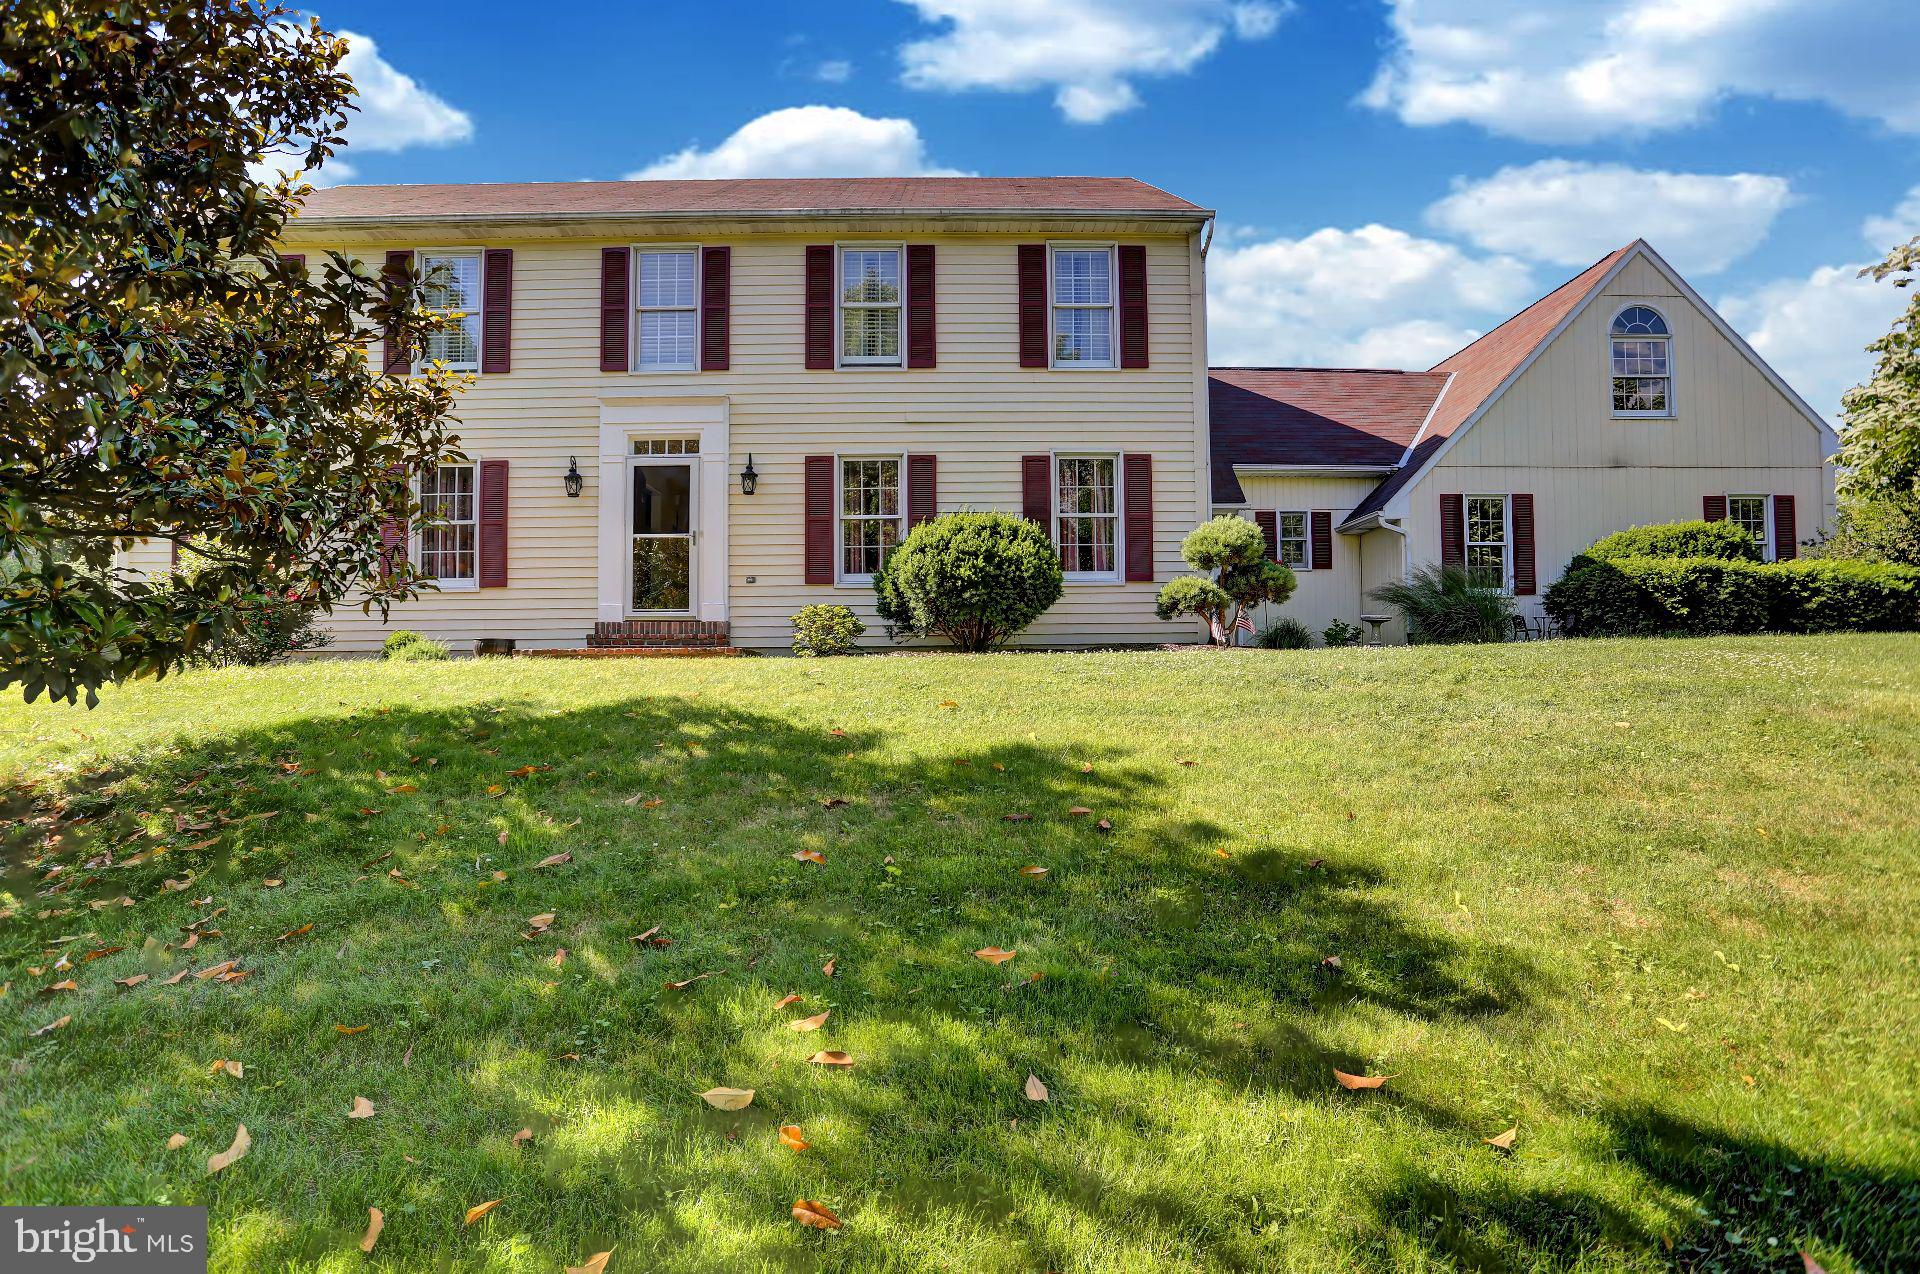 4929 MEADOWVIEW DRIVE, MACUNGIE, PA 18062